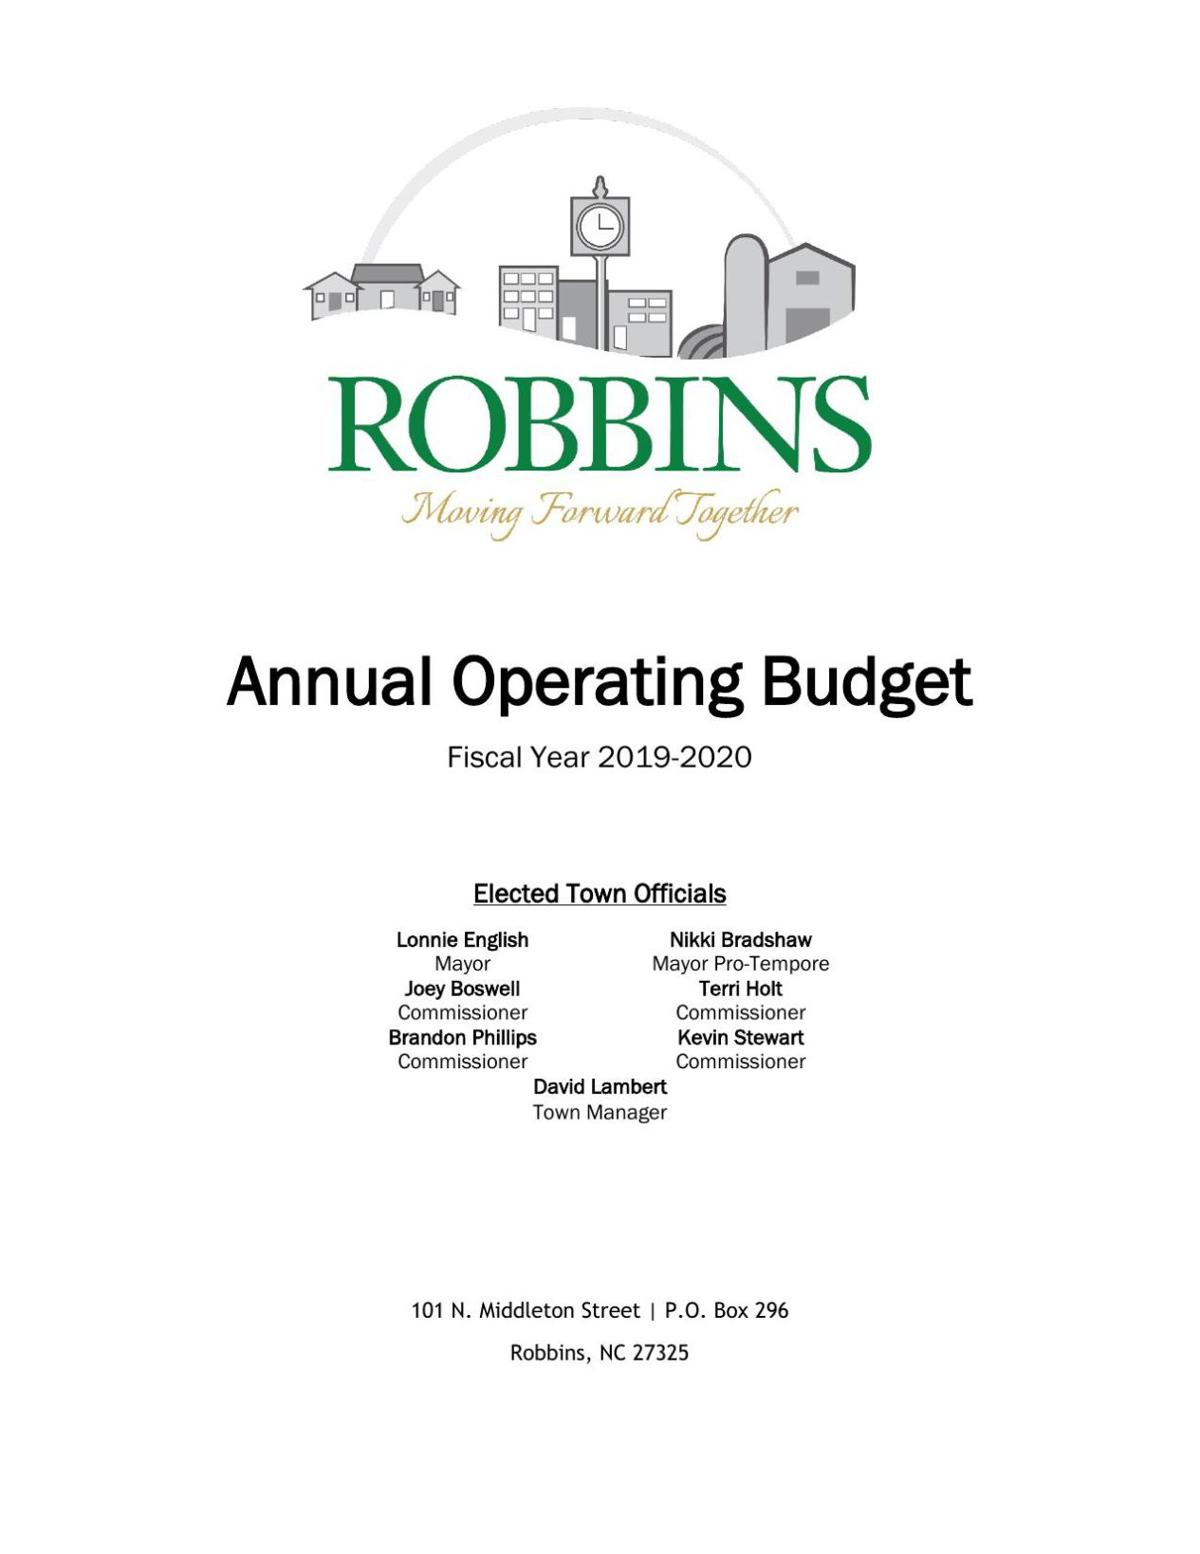 Read Robbins' Operating Budget For Fiscal Year 2019-2020